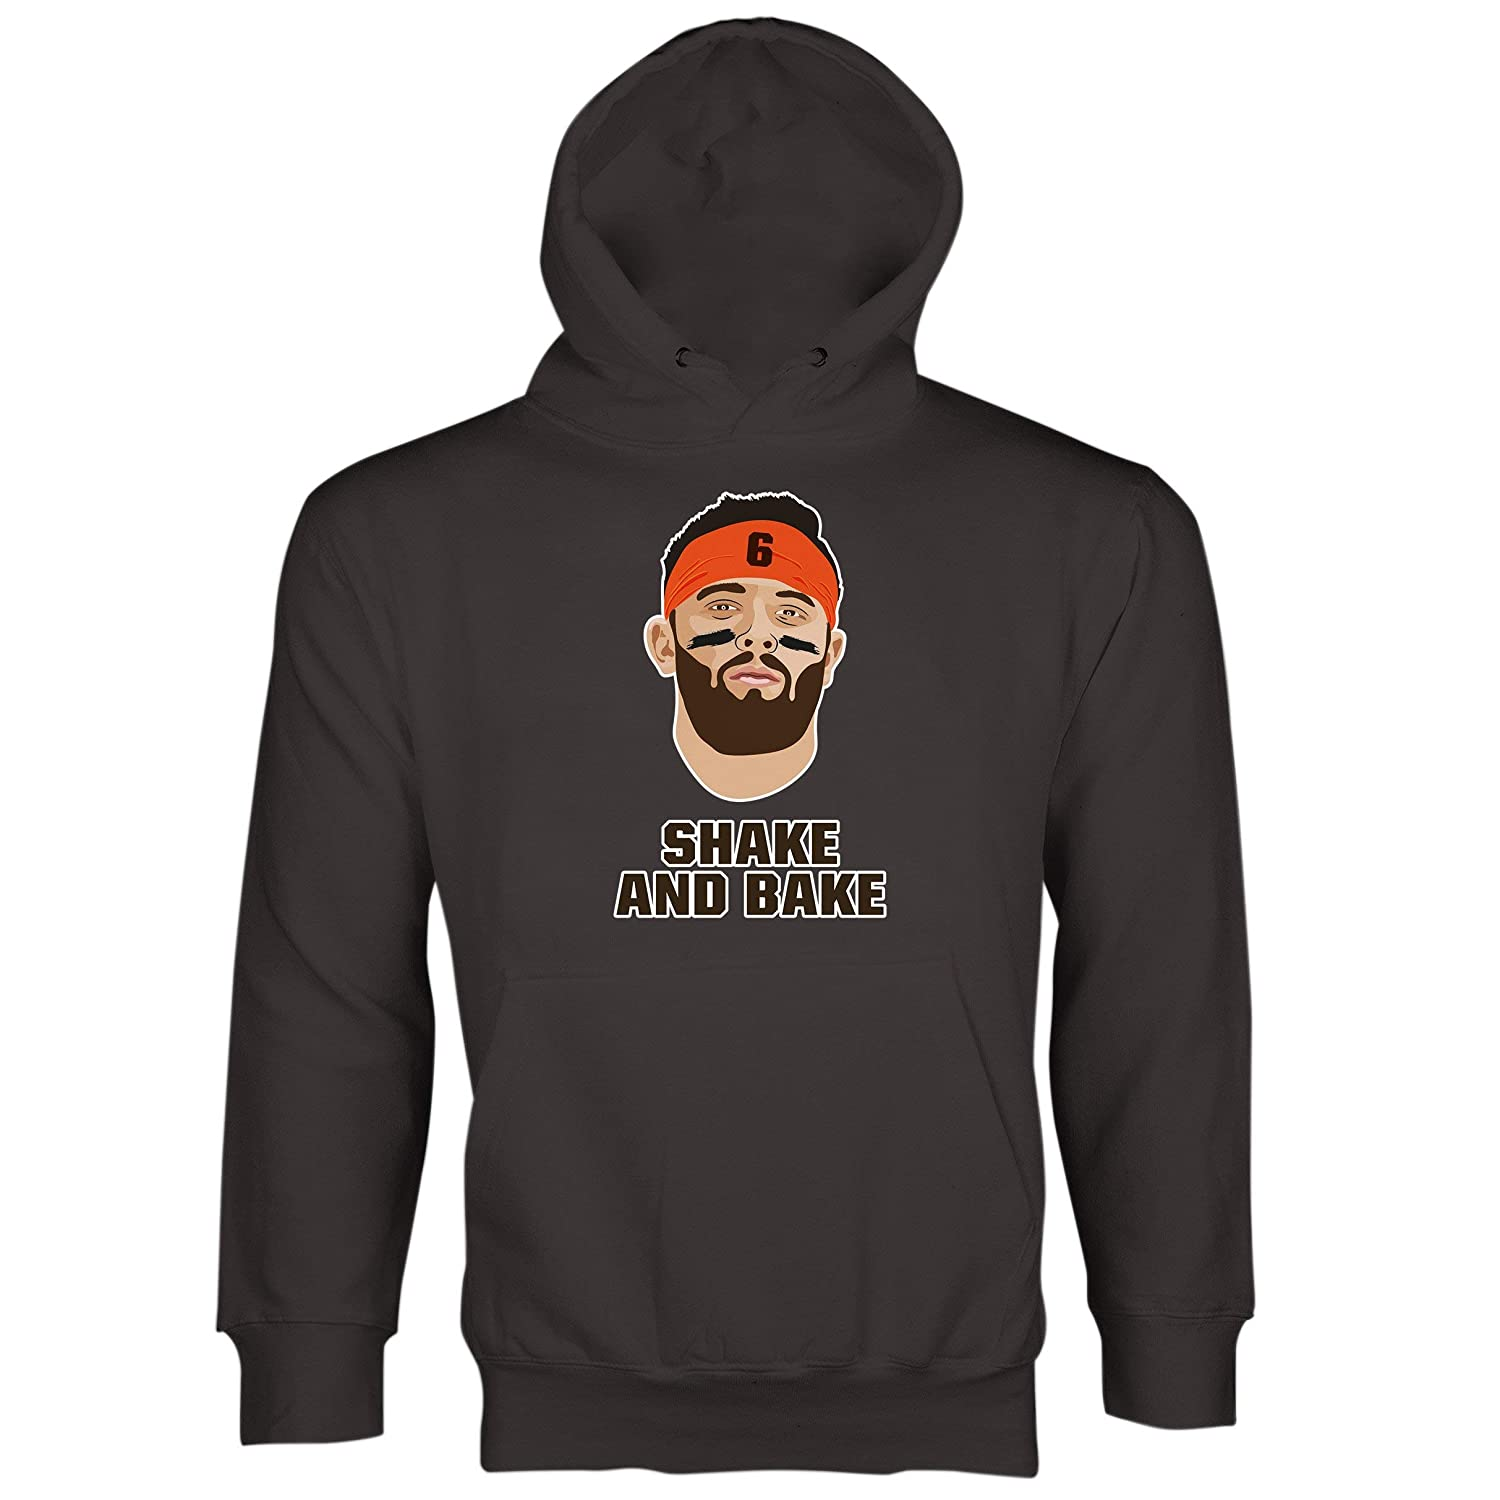 Shake Browns Sweatshirt com Mayfield And Amazon Hoodie Bake Baker Clothing Hoodies